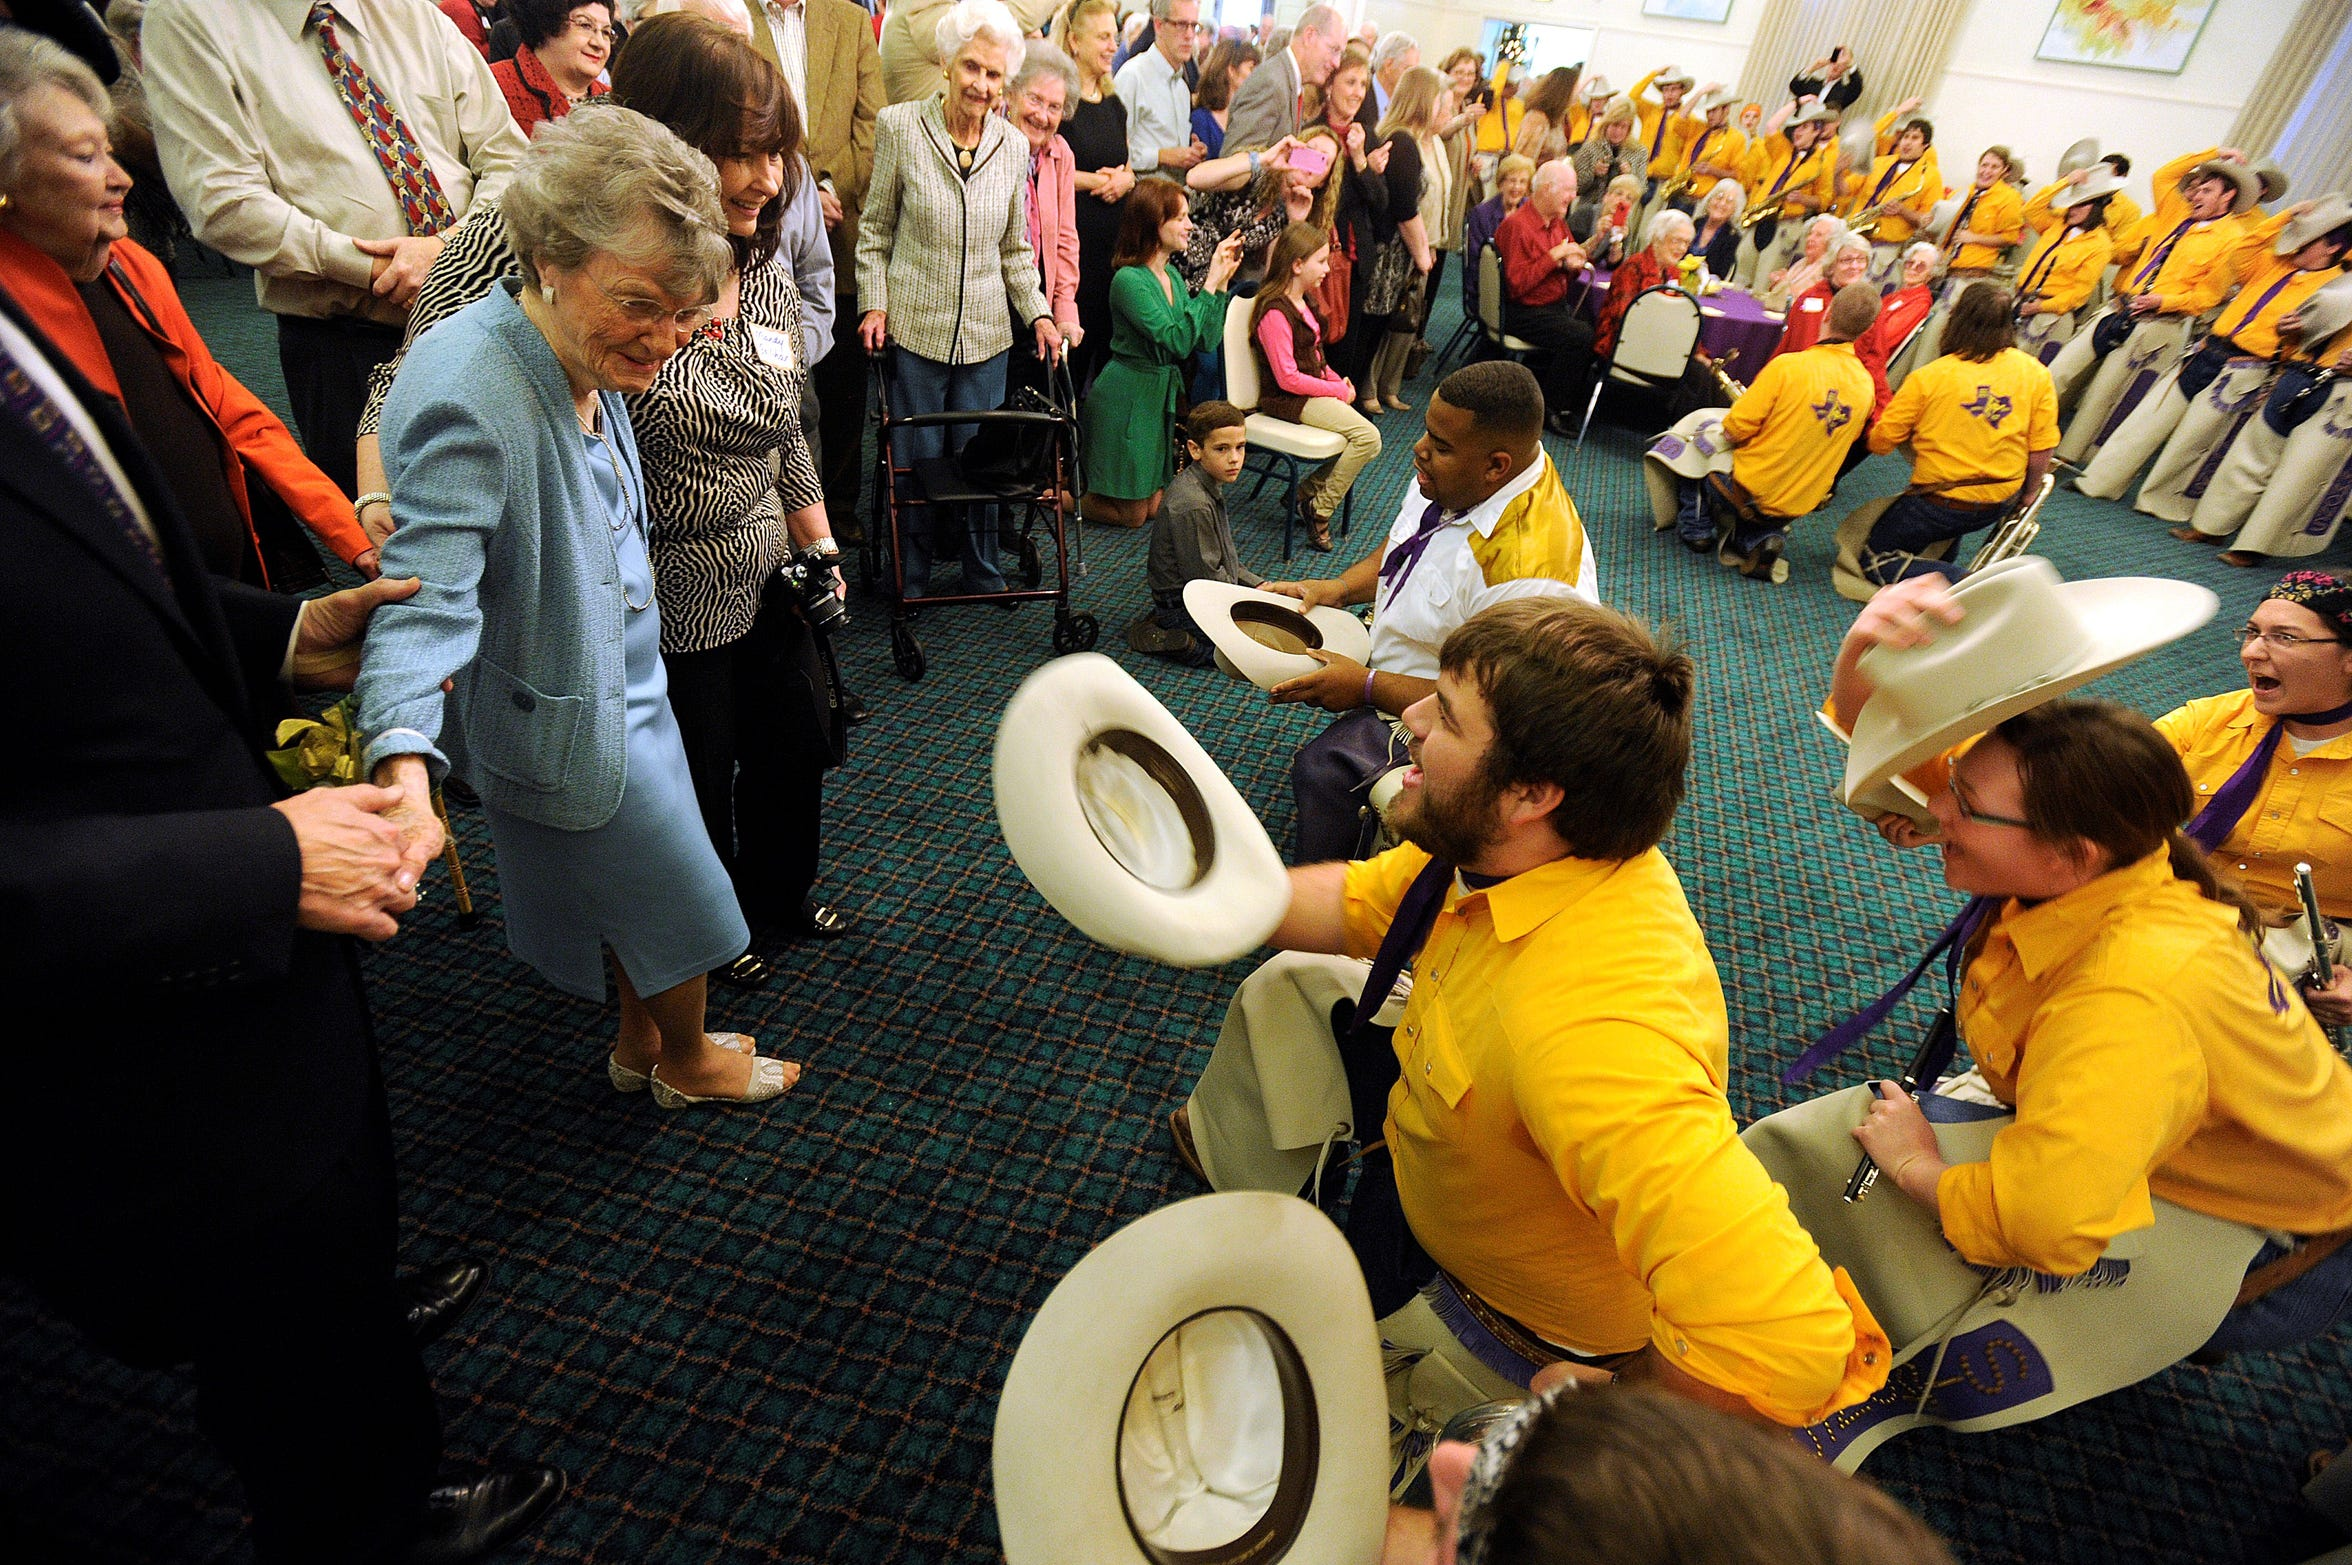 The Hardin-Simmons University Cowboy Band serenades Dr. Virginia Connally for her 100th birthday party Dec. 8, 2012.